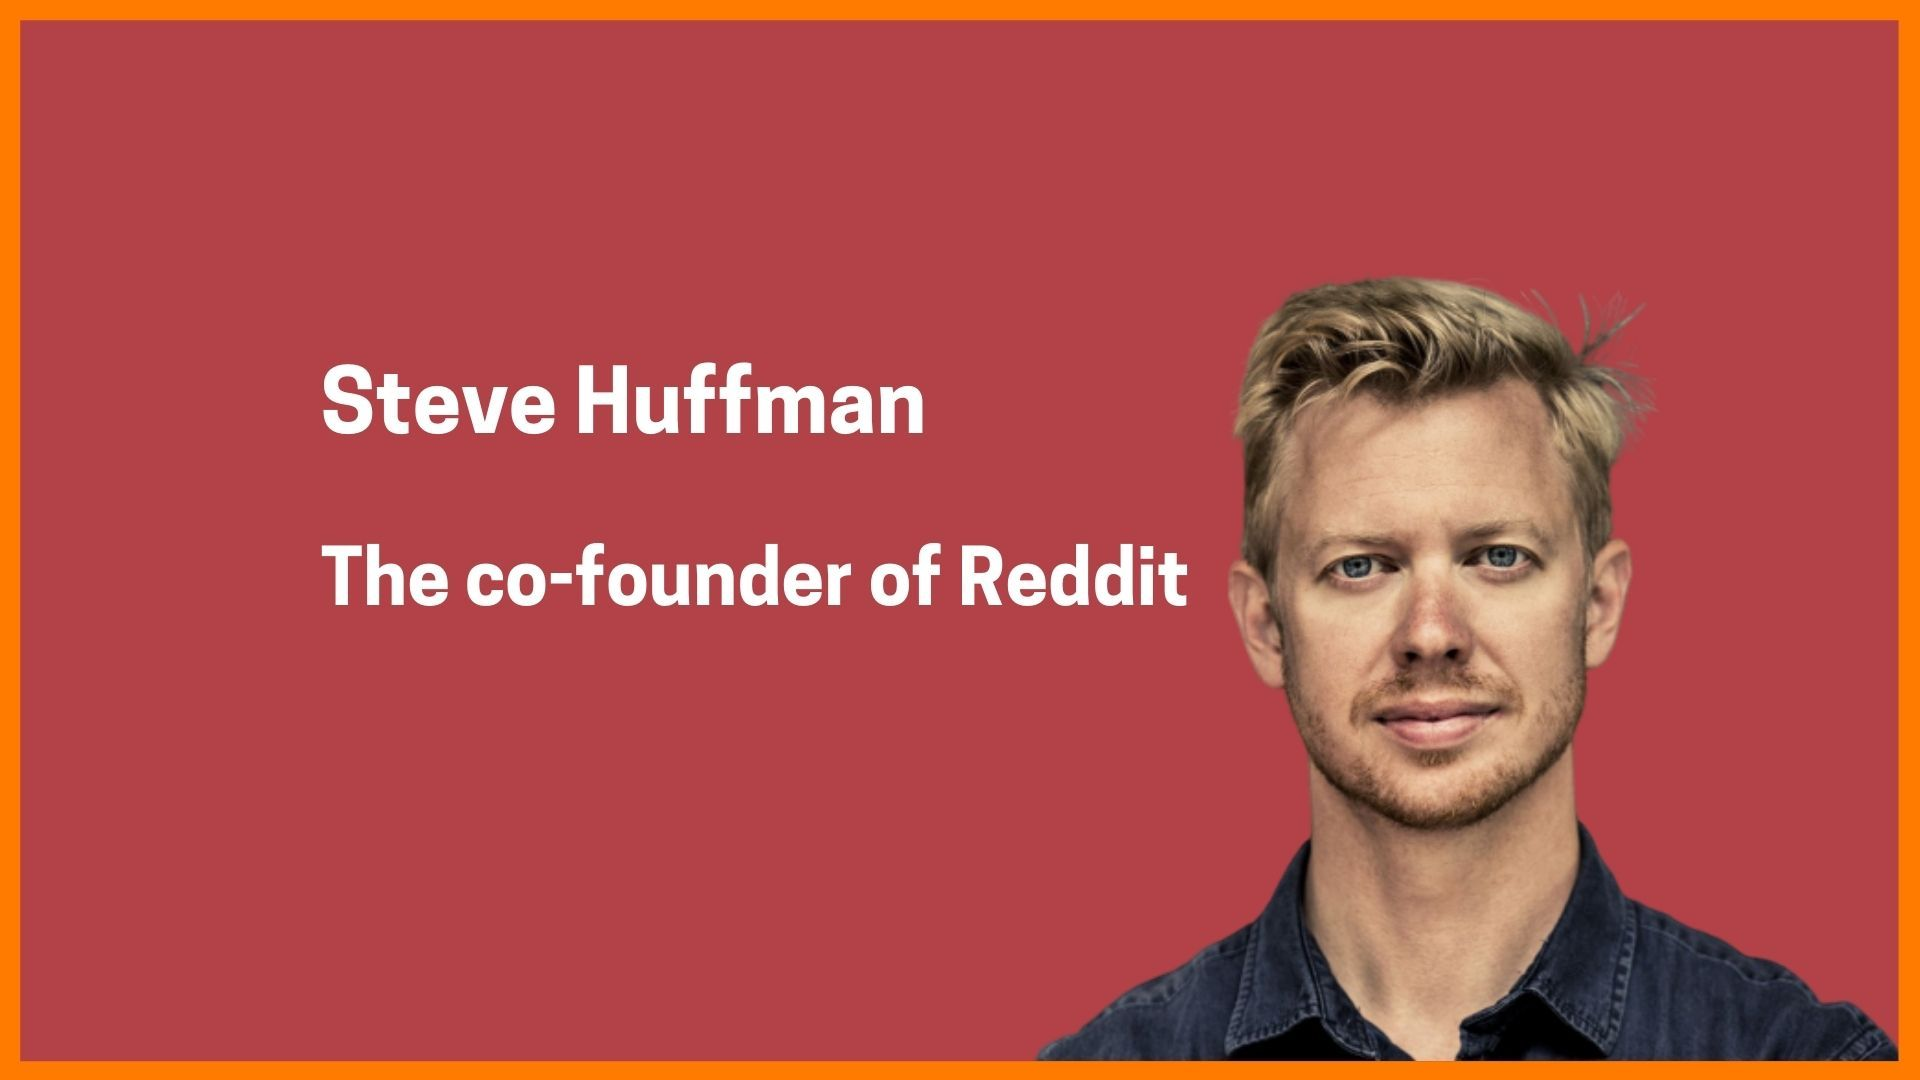 Steve Huffman- Co-founder of Reddit